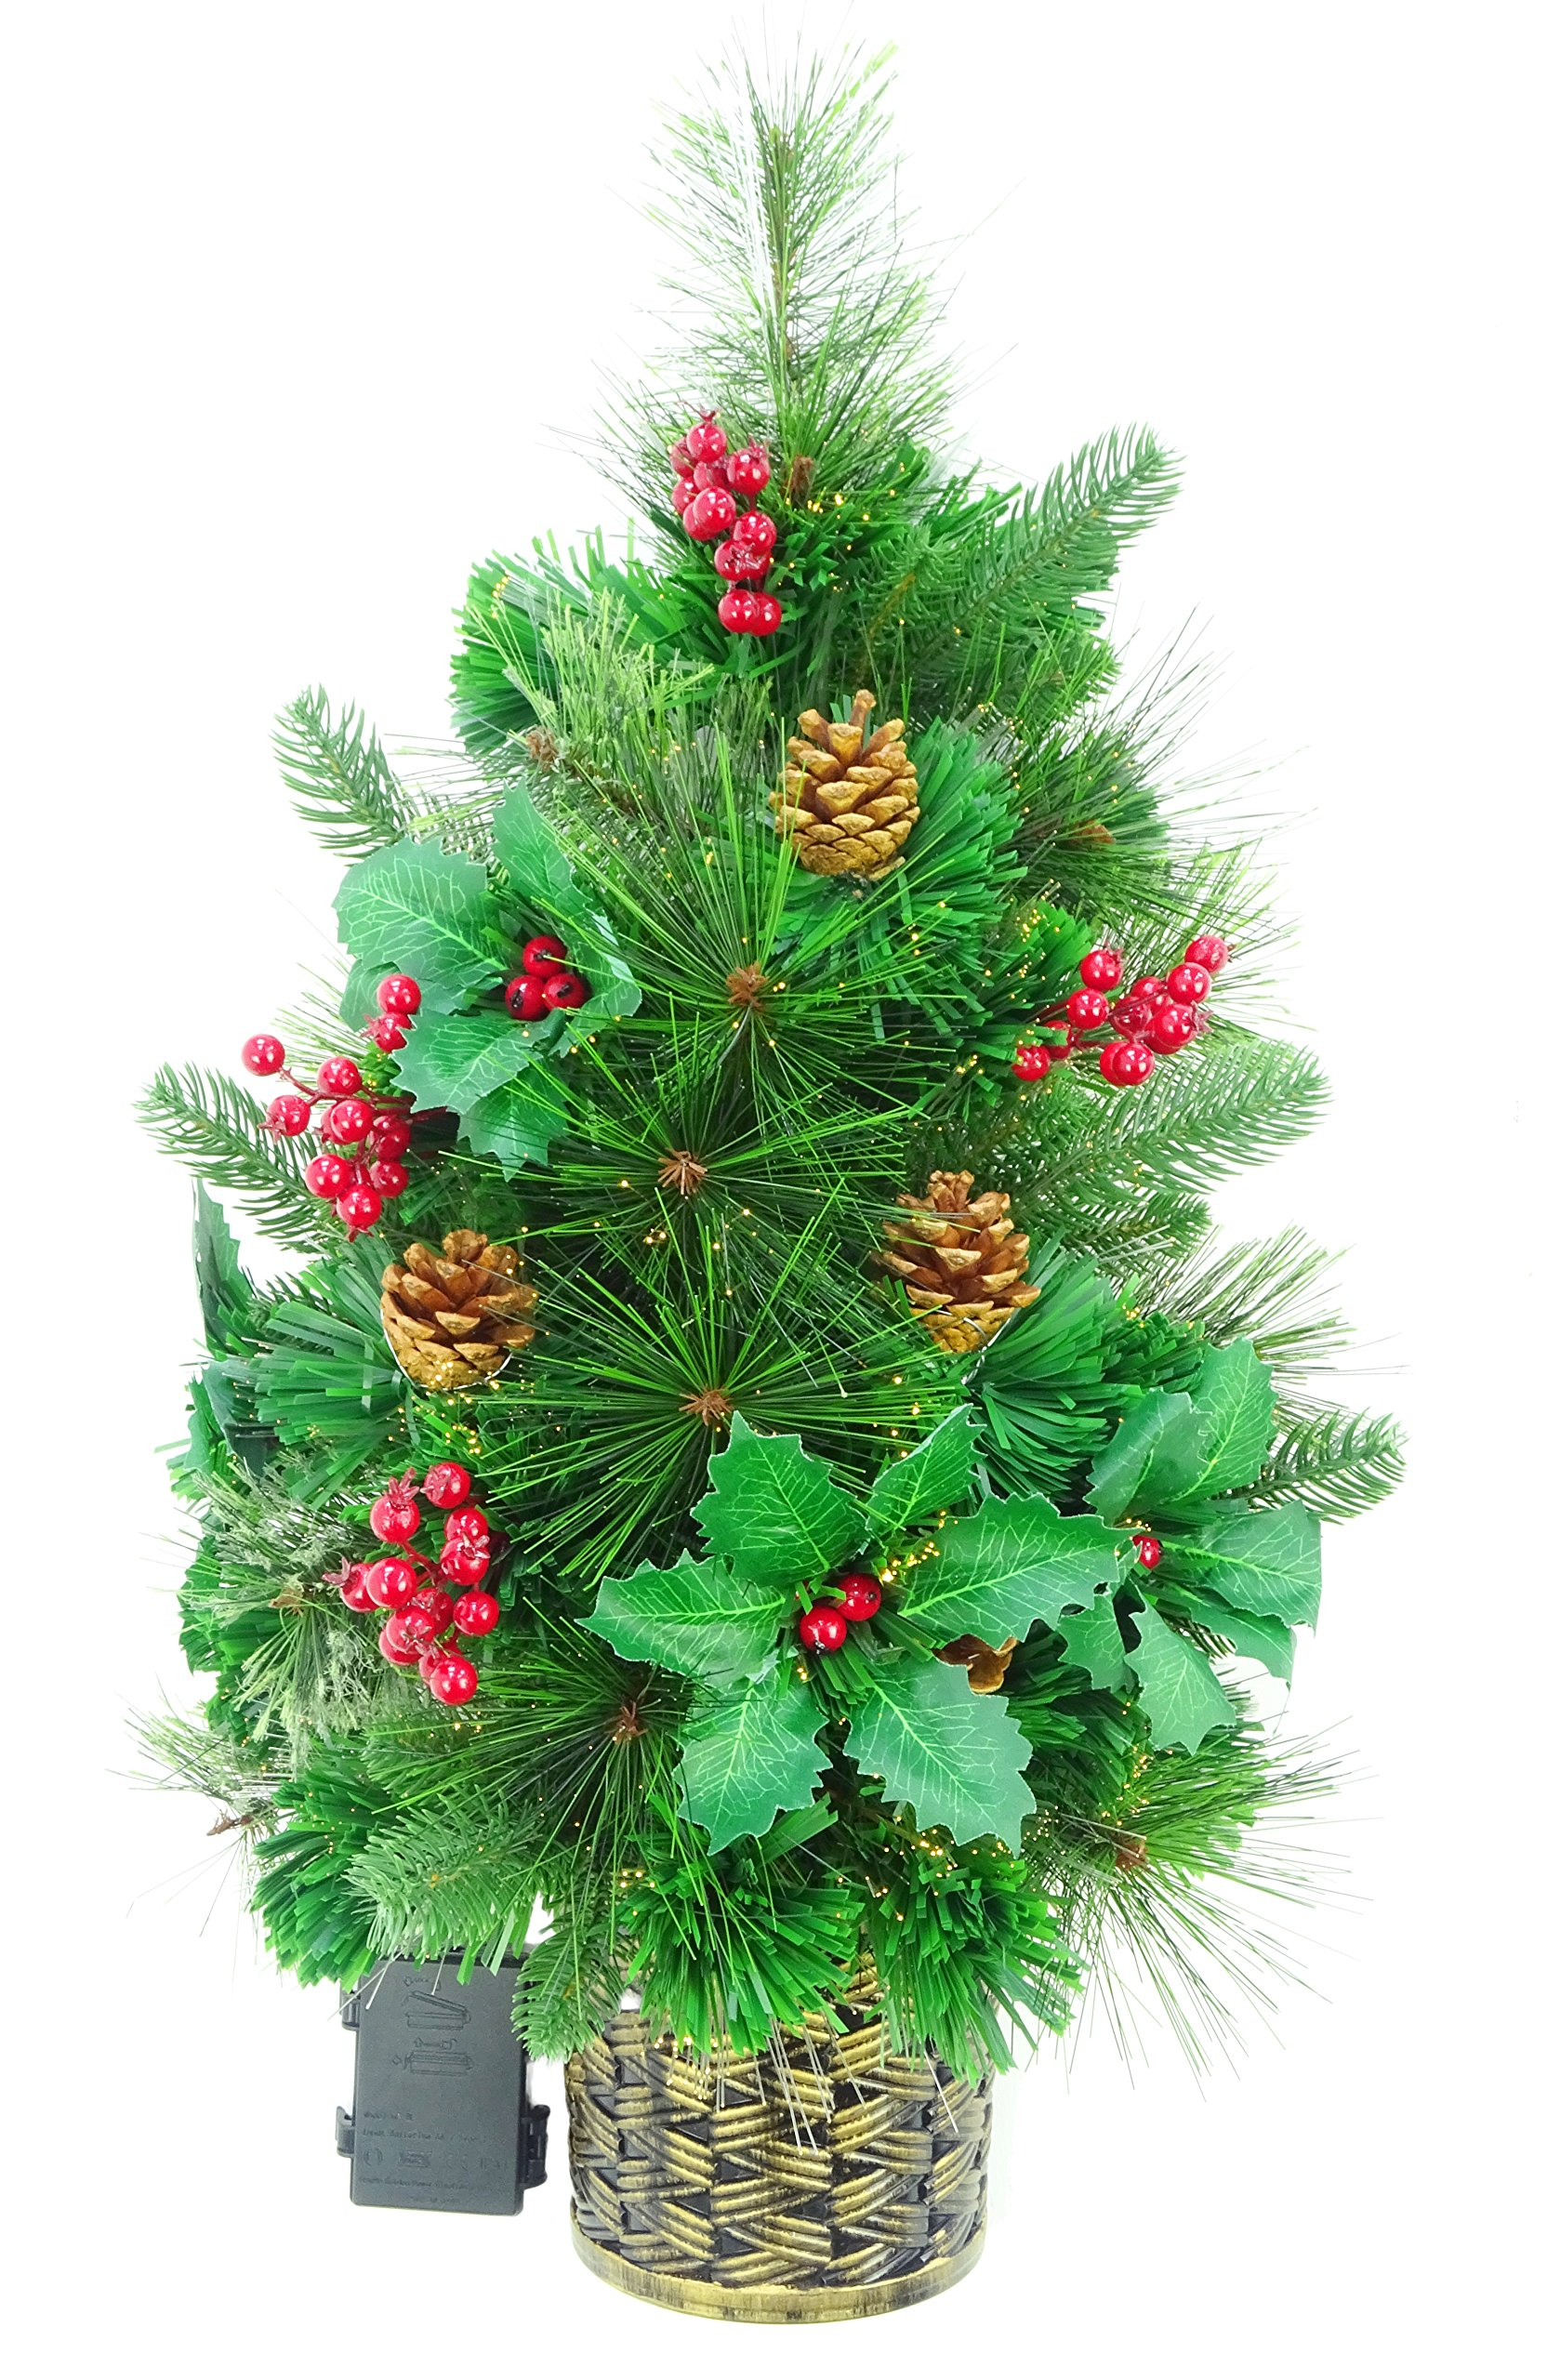 Christmas Concepts 2ft (60cm) Green Fibre Optic Pine Wall Mounted Christmas Tree with Cones and Red Berries